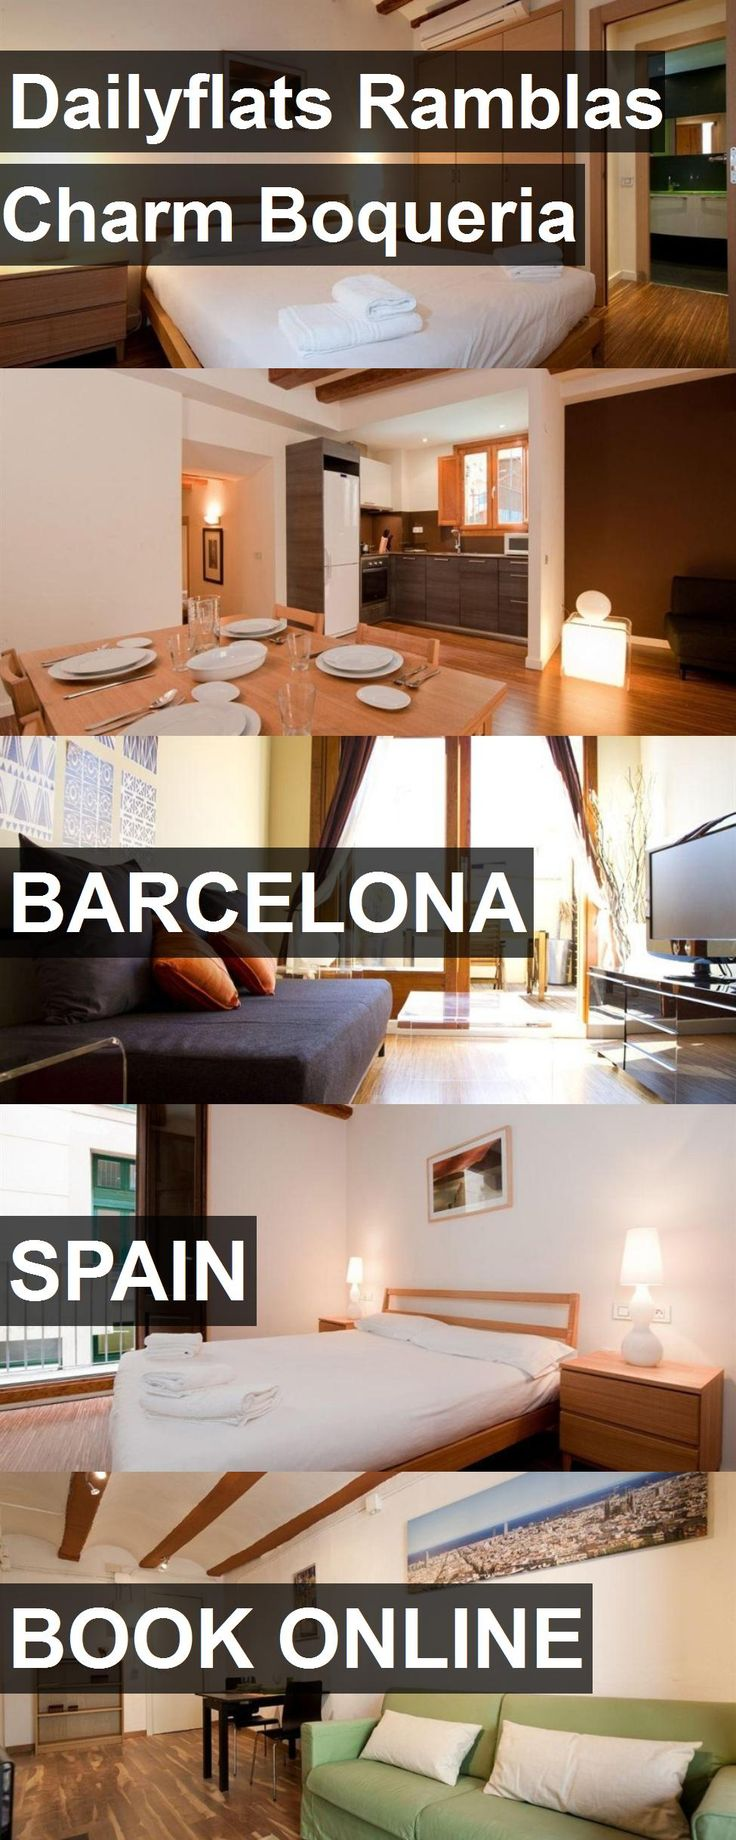 Hotel Dailyflats Ramblas Charm Boqueria in Barcelona, Spain. For more information, photos, reviews and best prices please follow the link. #Spain #Barcelona #travel #vacation #hotel